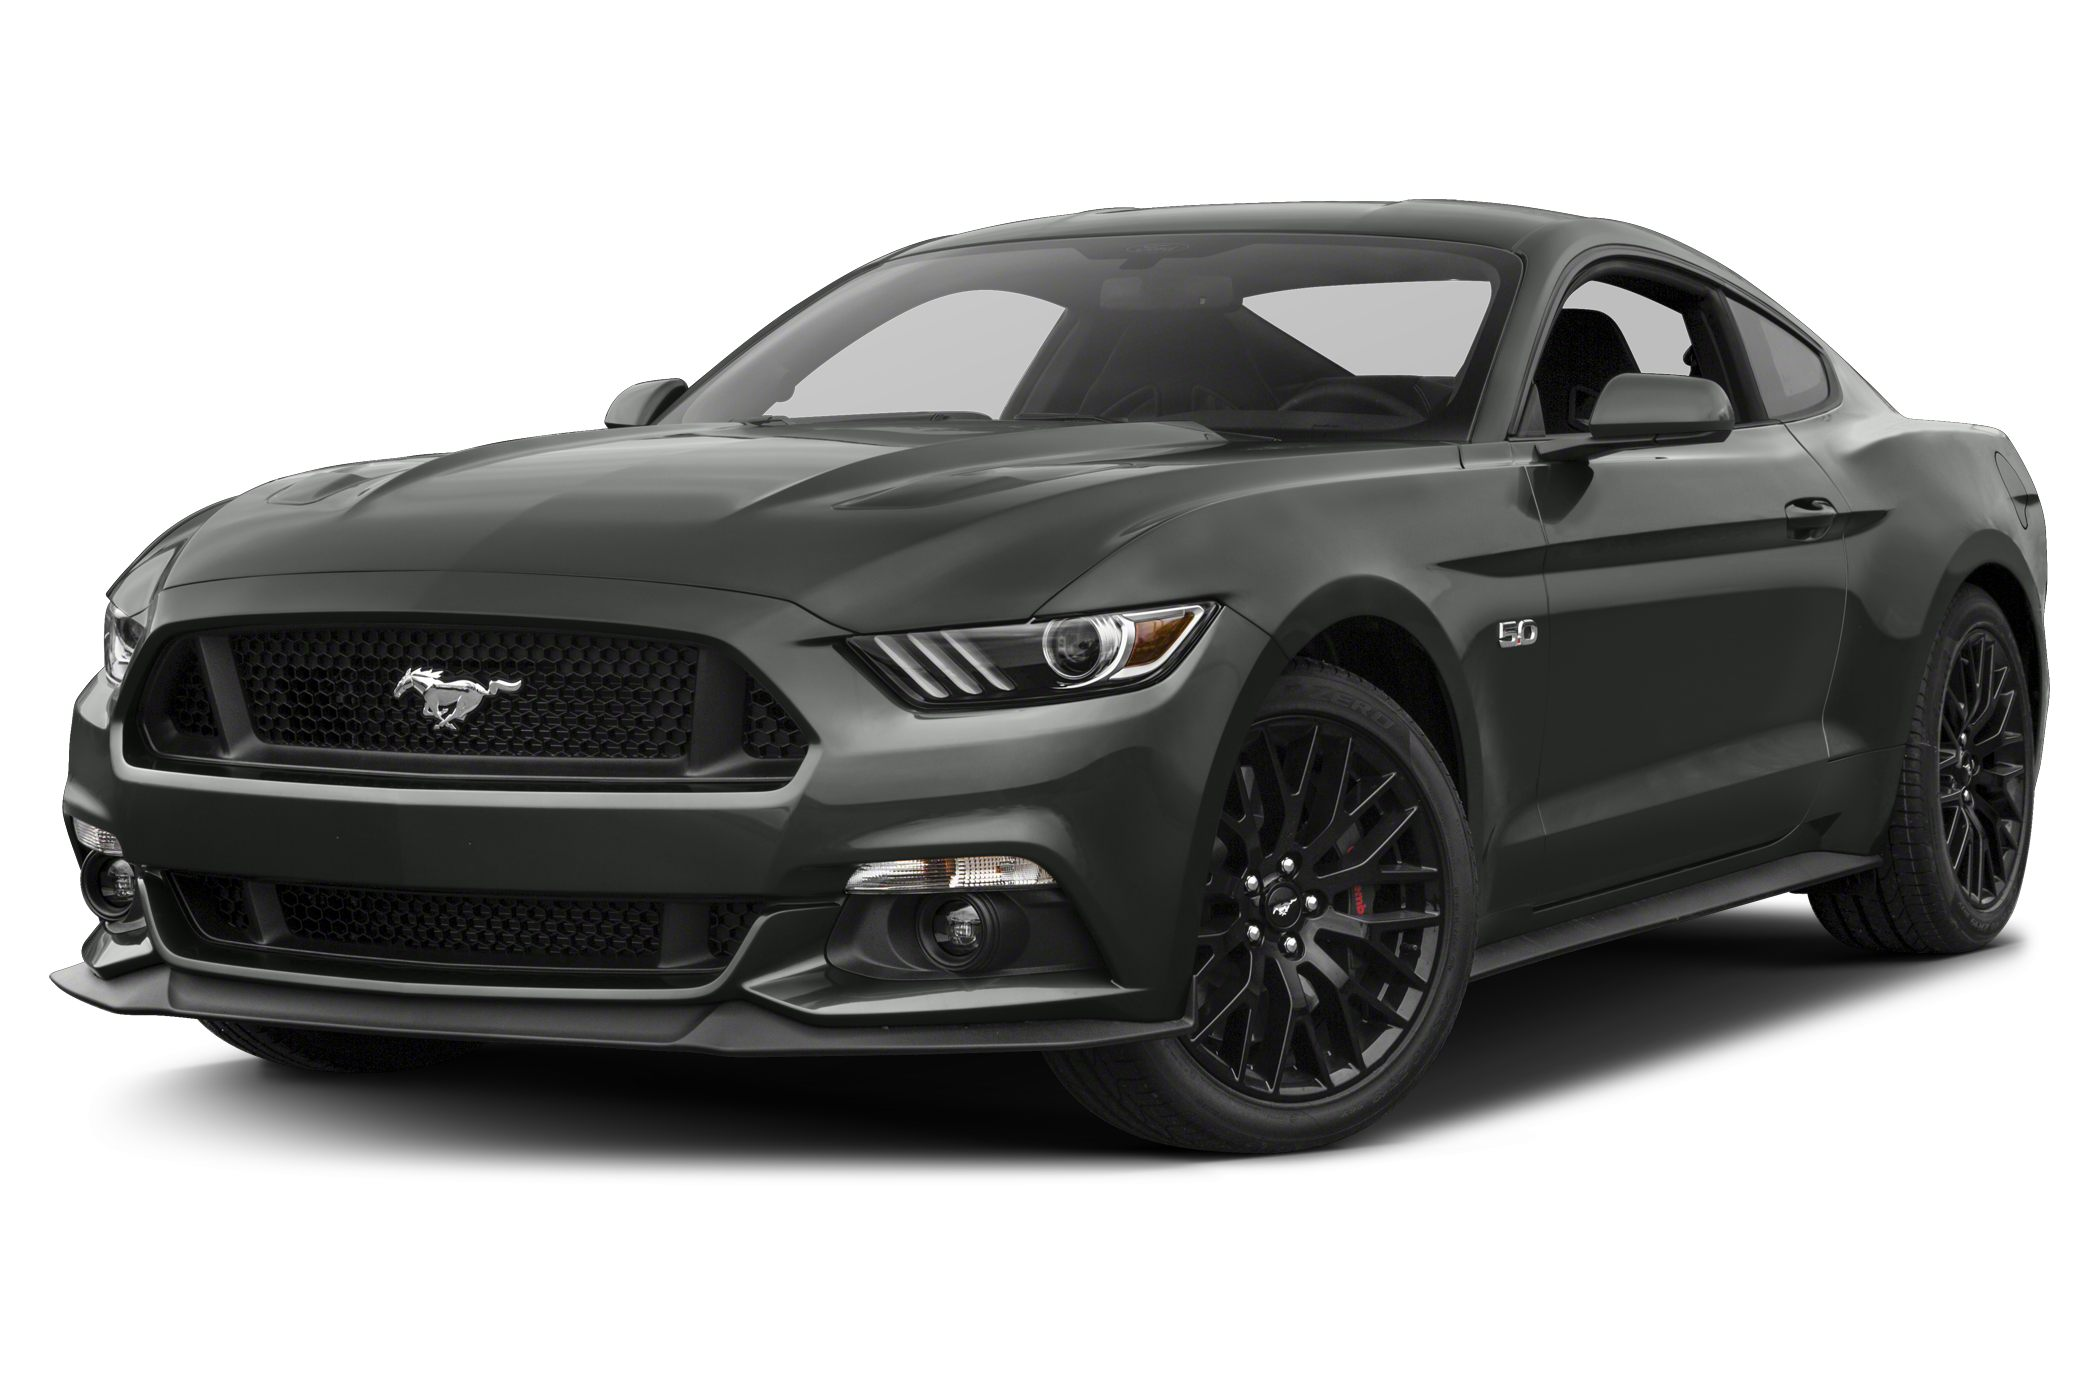 2015 Ford Mustang GT Coupe for sale in DeSoto for $37,805 with 4 miles.